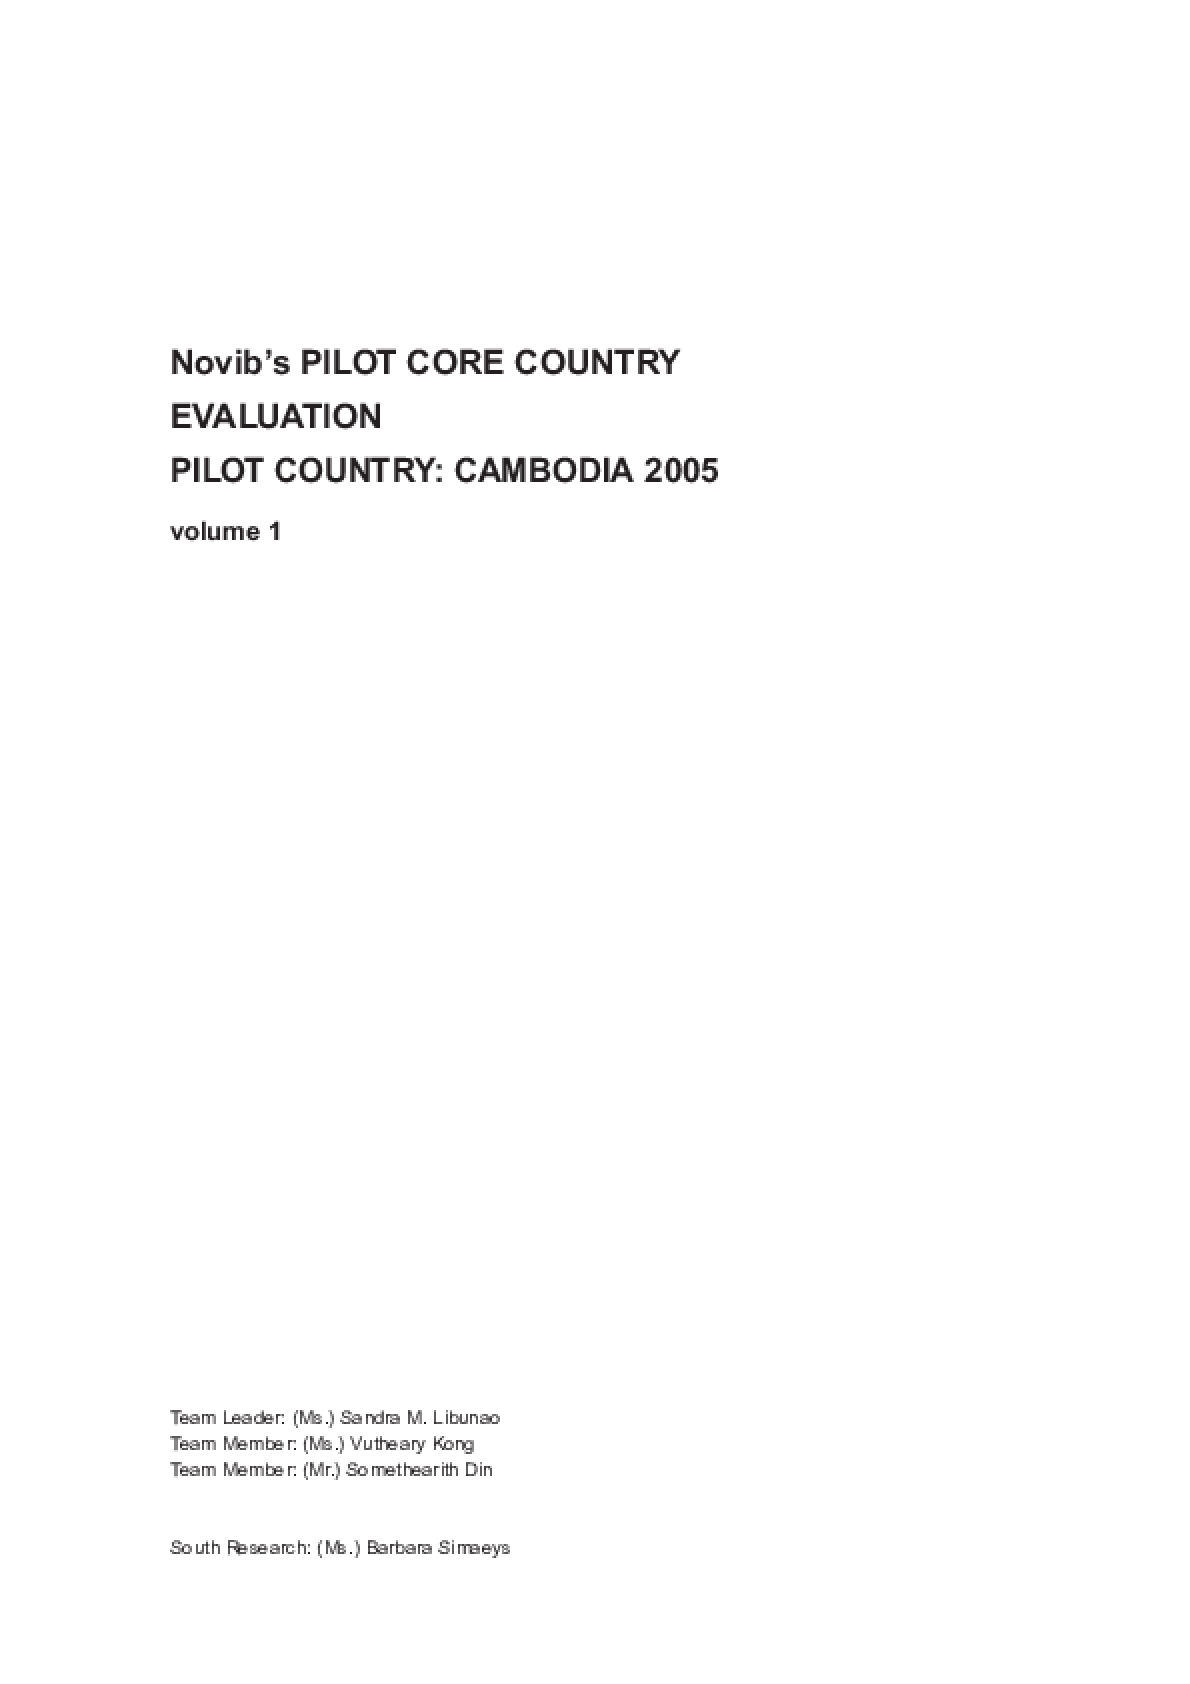 Novib's Pilot Core Country Evaluation: Cambodia 2001 - 2005